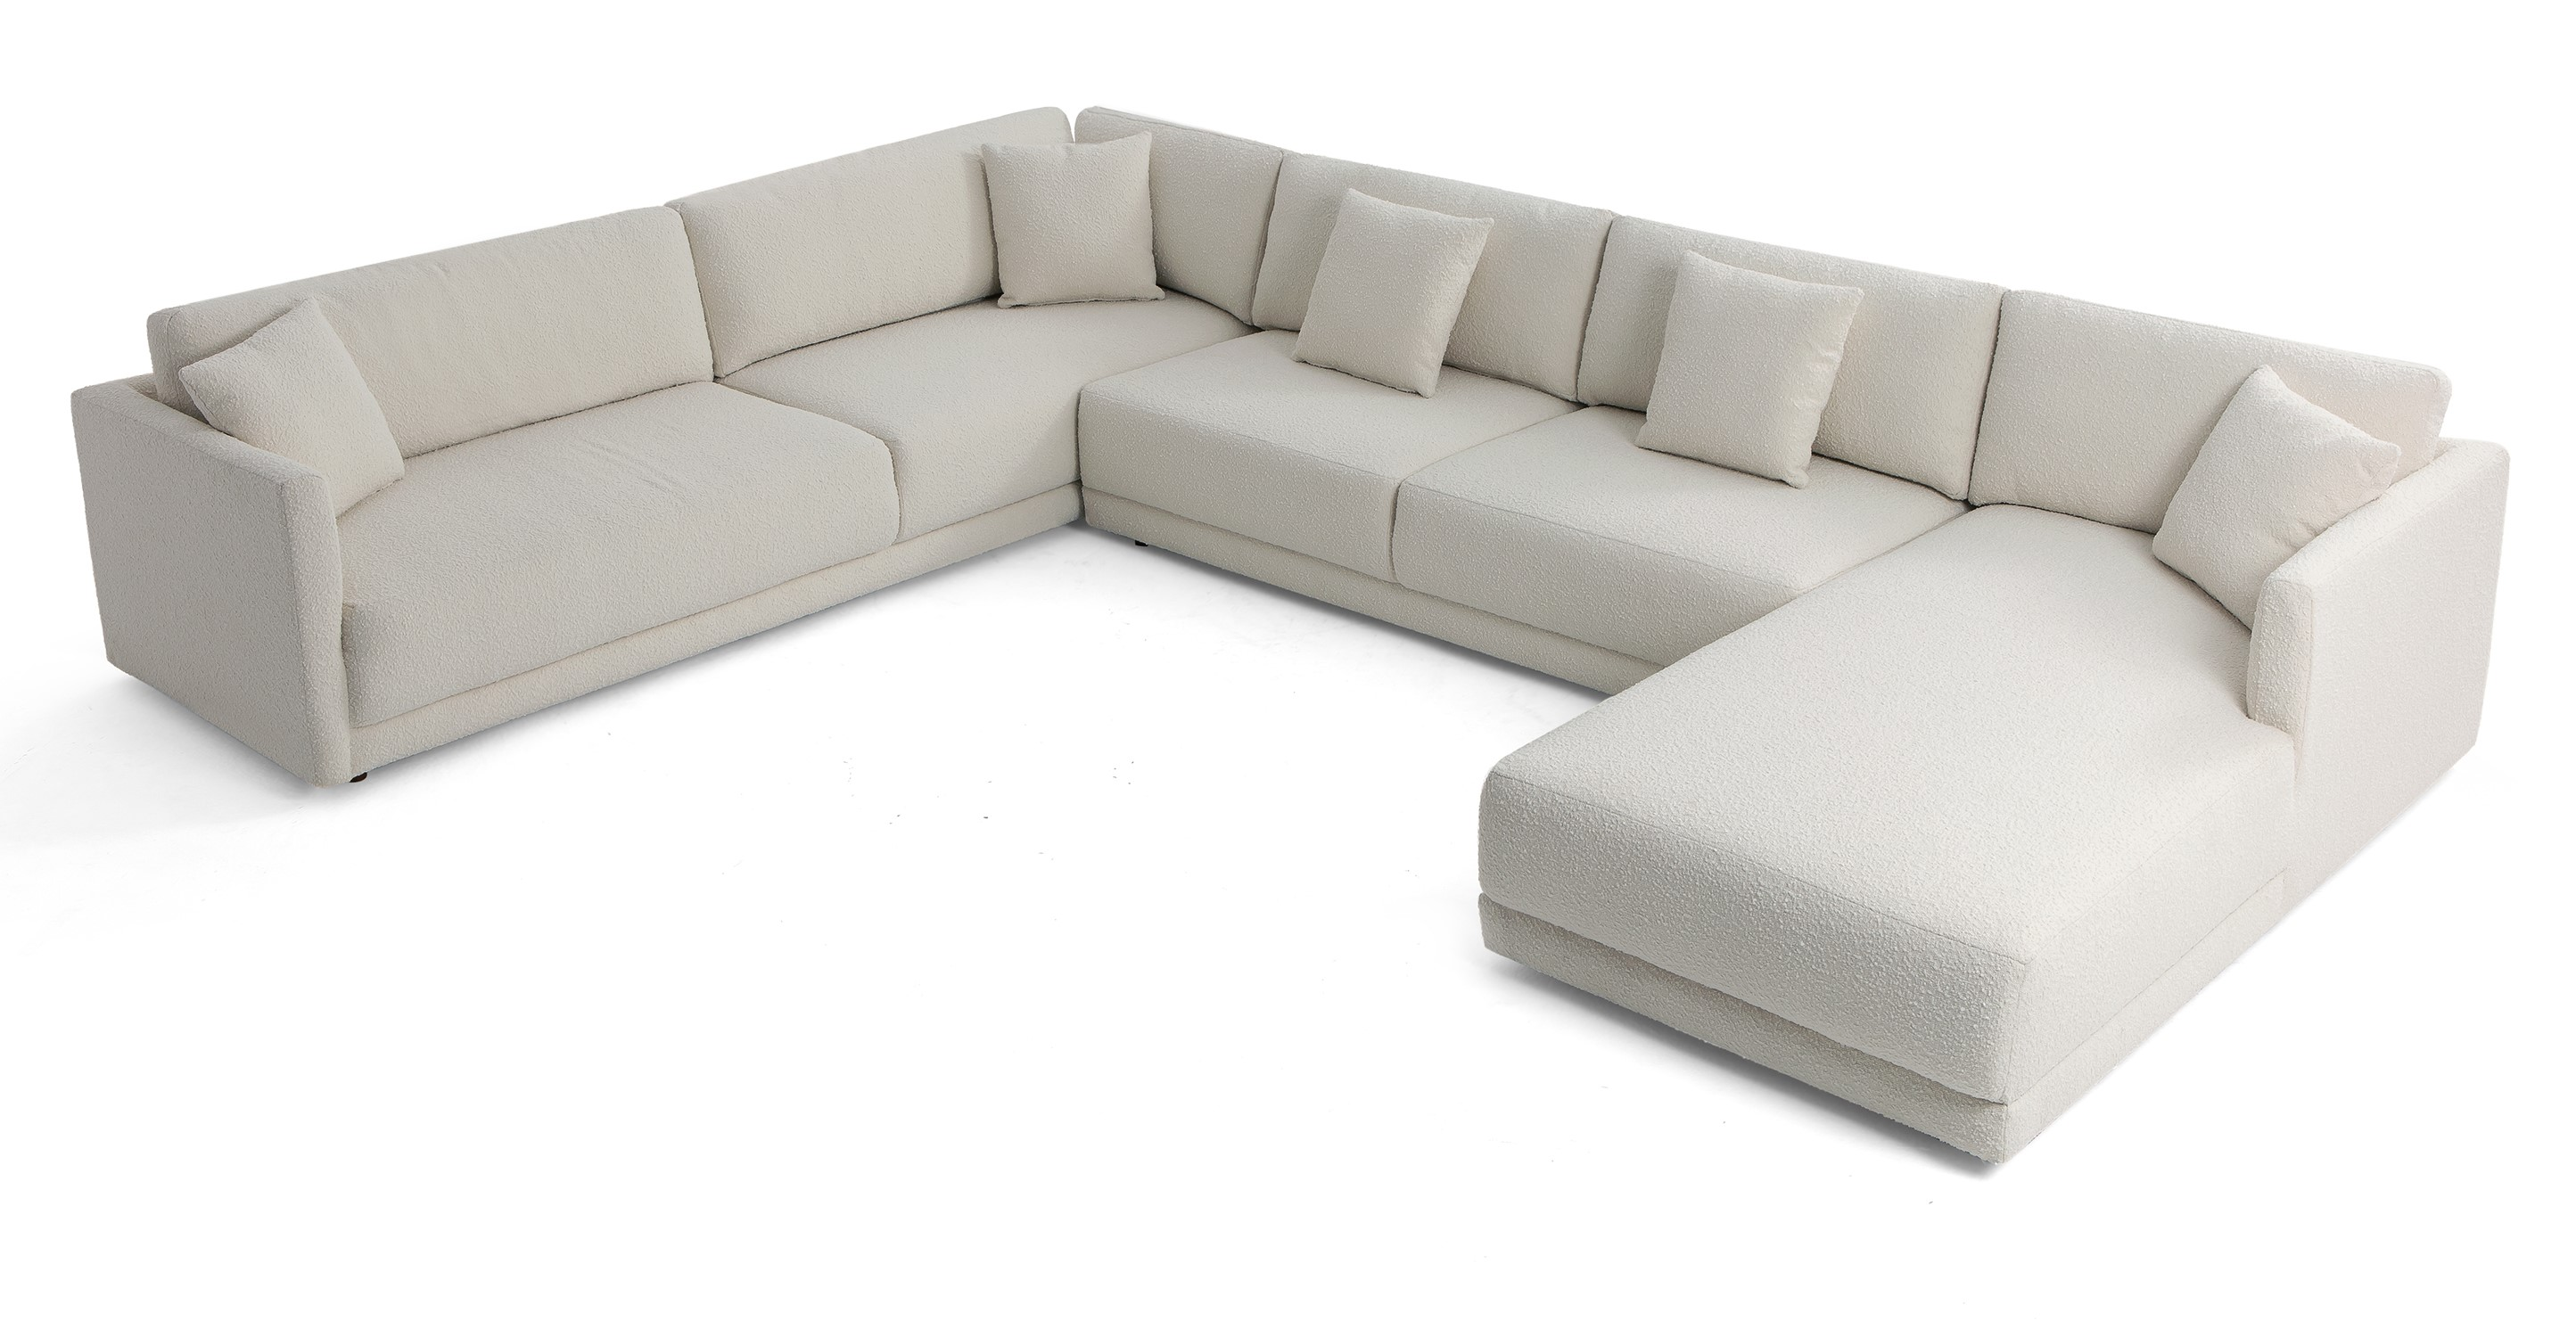 "Domus 155"" 3-pc 3-Sided Sofa Sectional Right, Blanc Boucle"